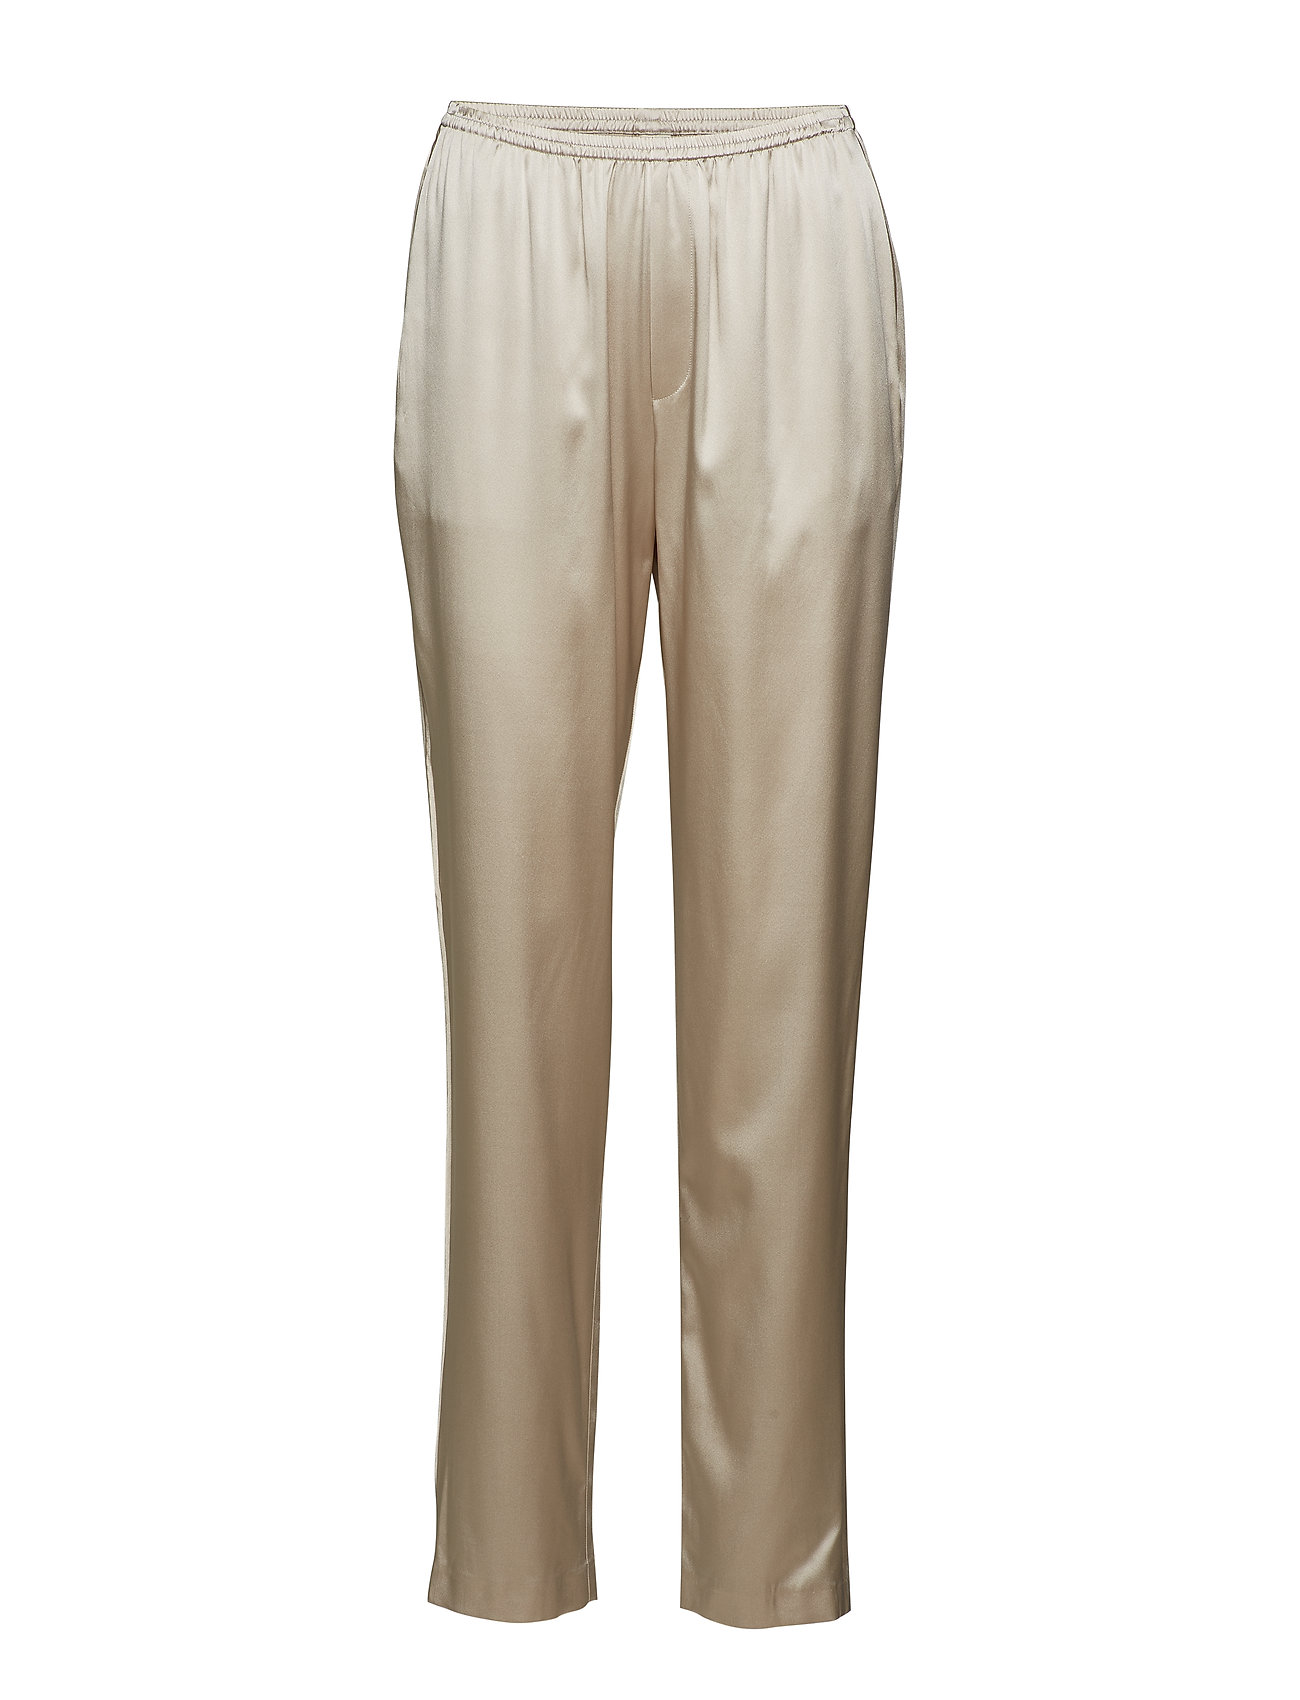 Filippa K Soft Sport Silk Satin Pyjama Pants